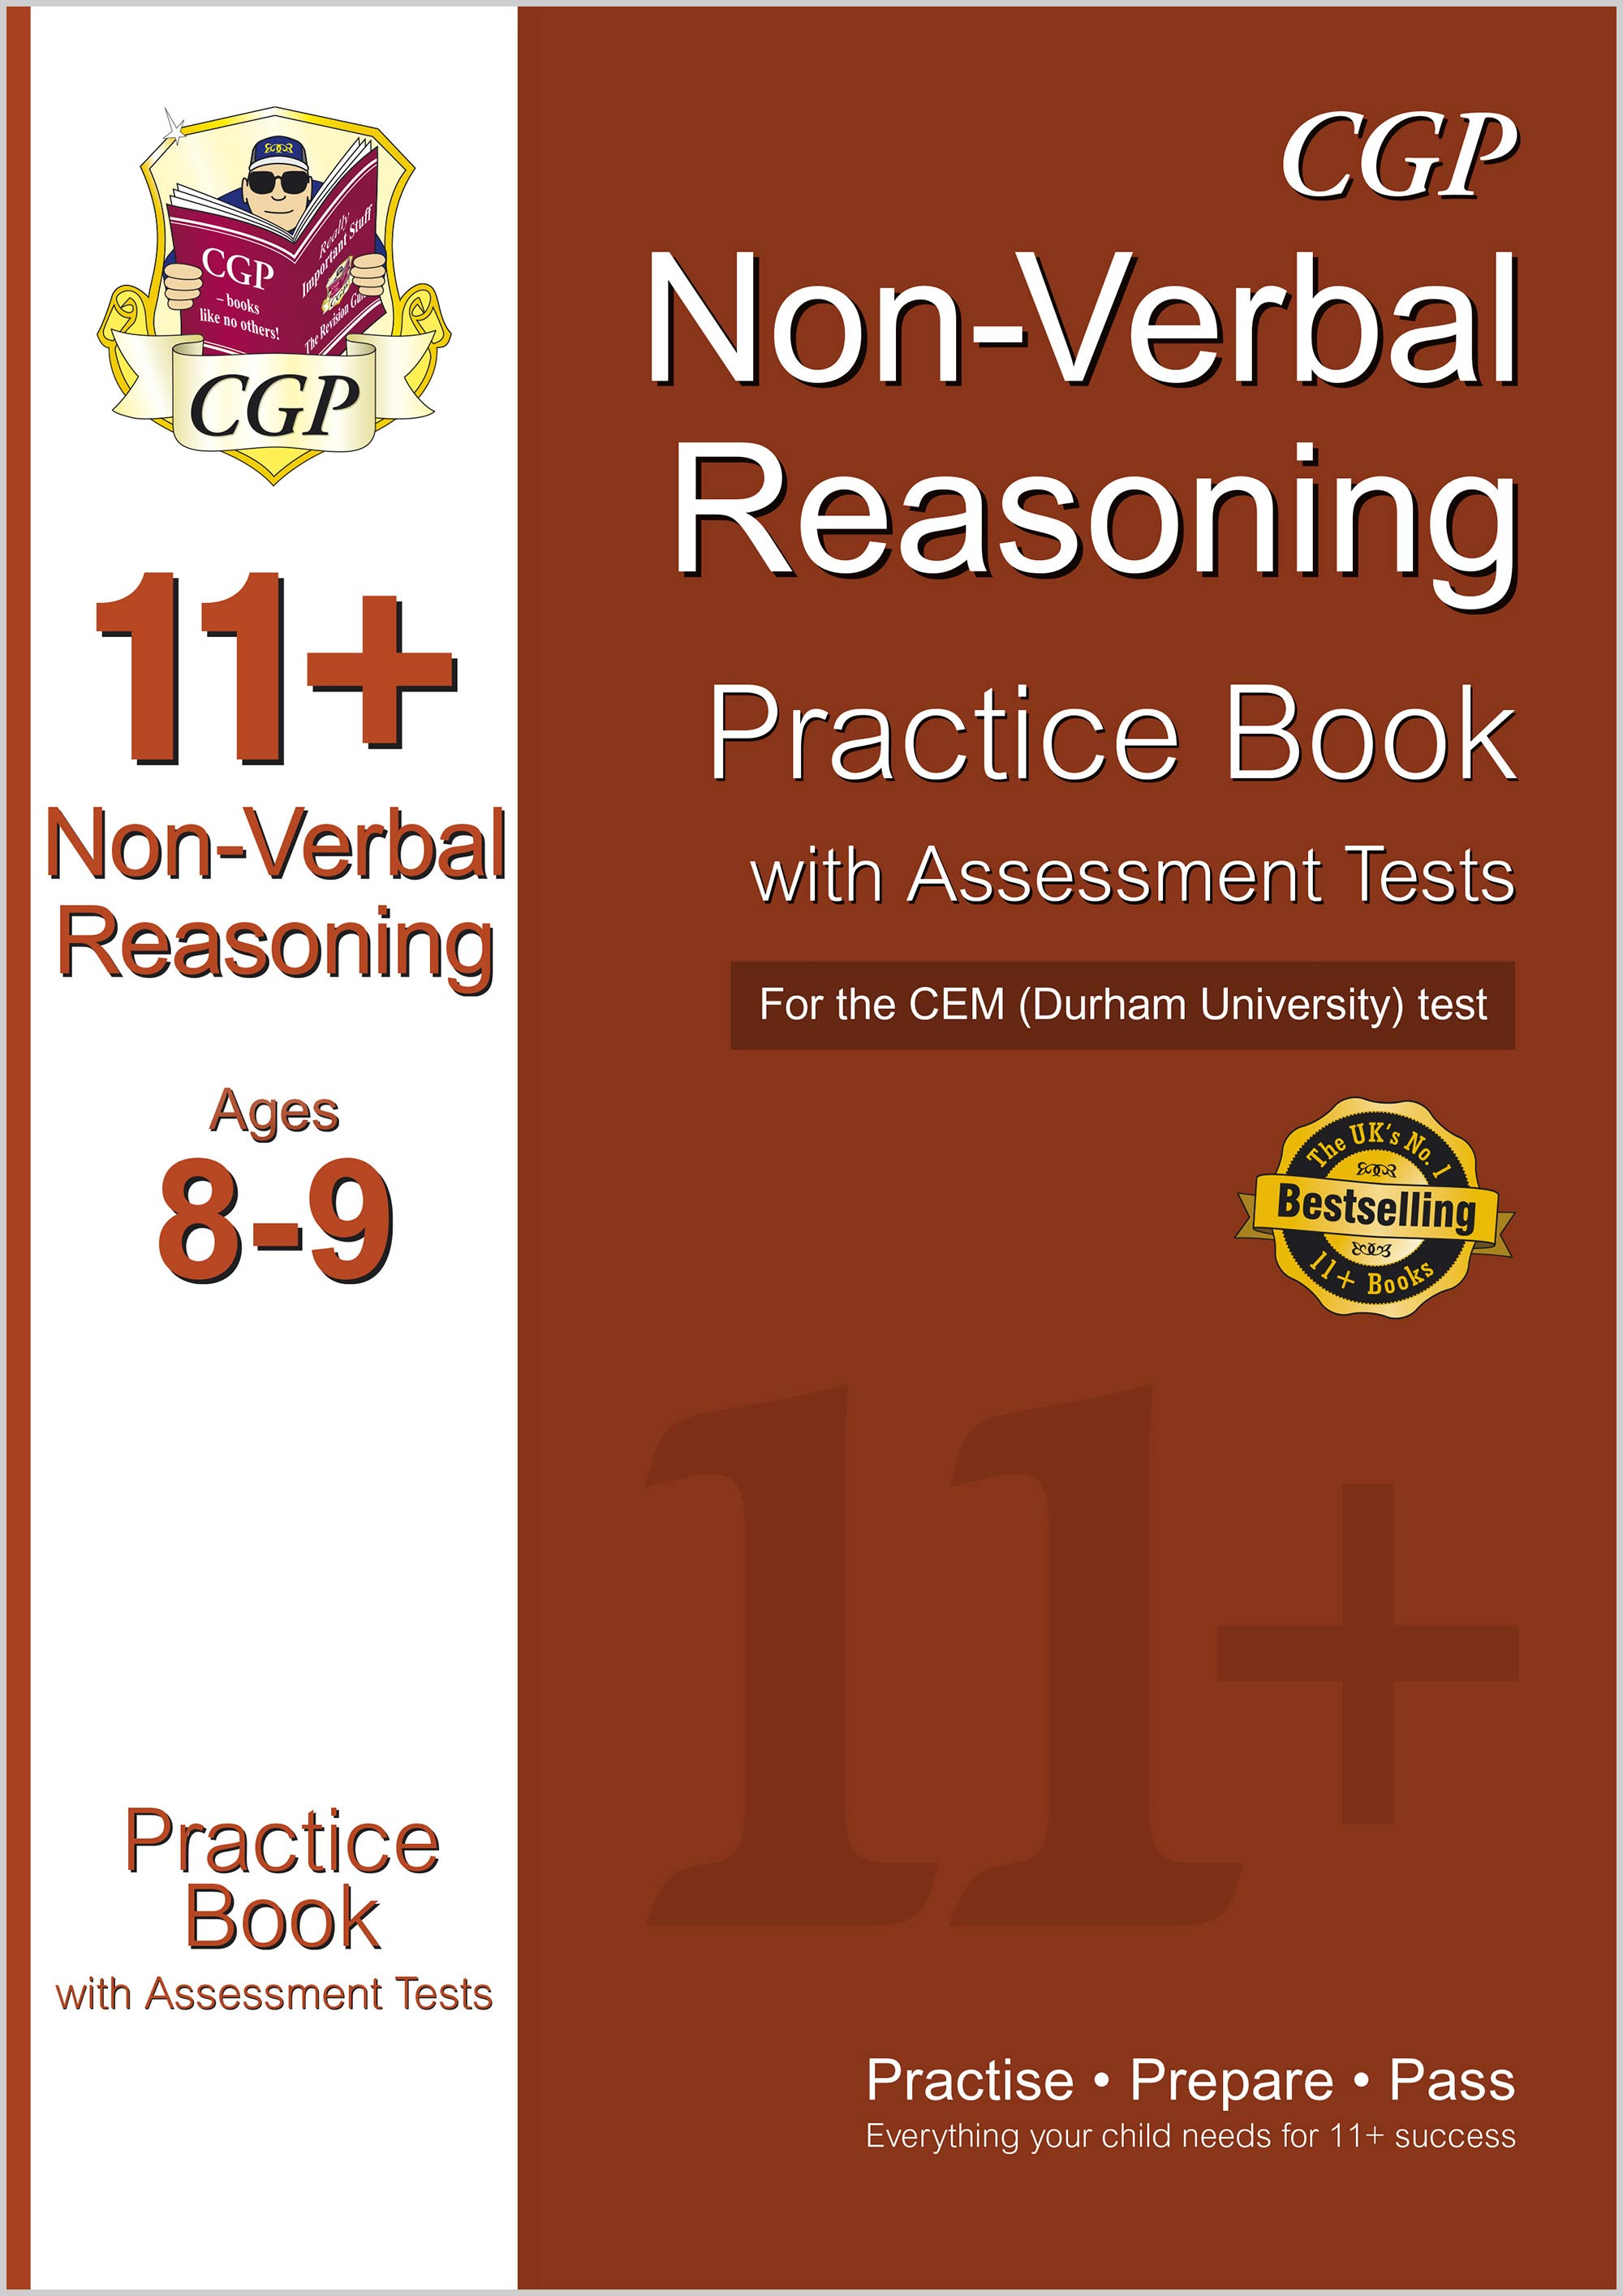 N4QDE1 - 11+ Non-Verbal Reasoning Practice Book with Assessment Tests (Ages 8-9) for the CEM Test